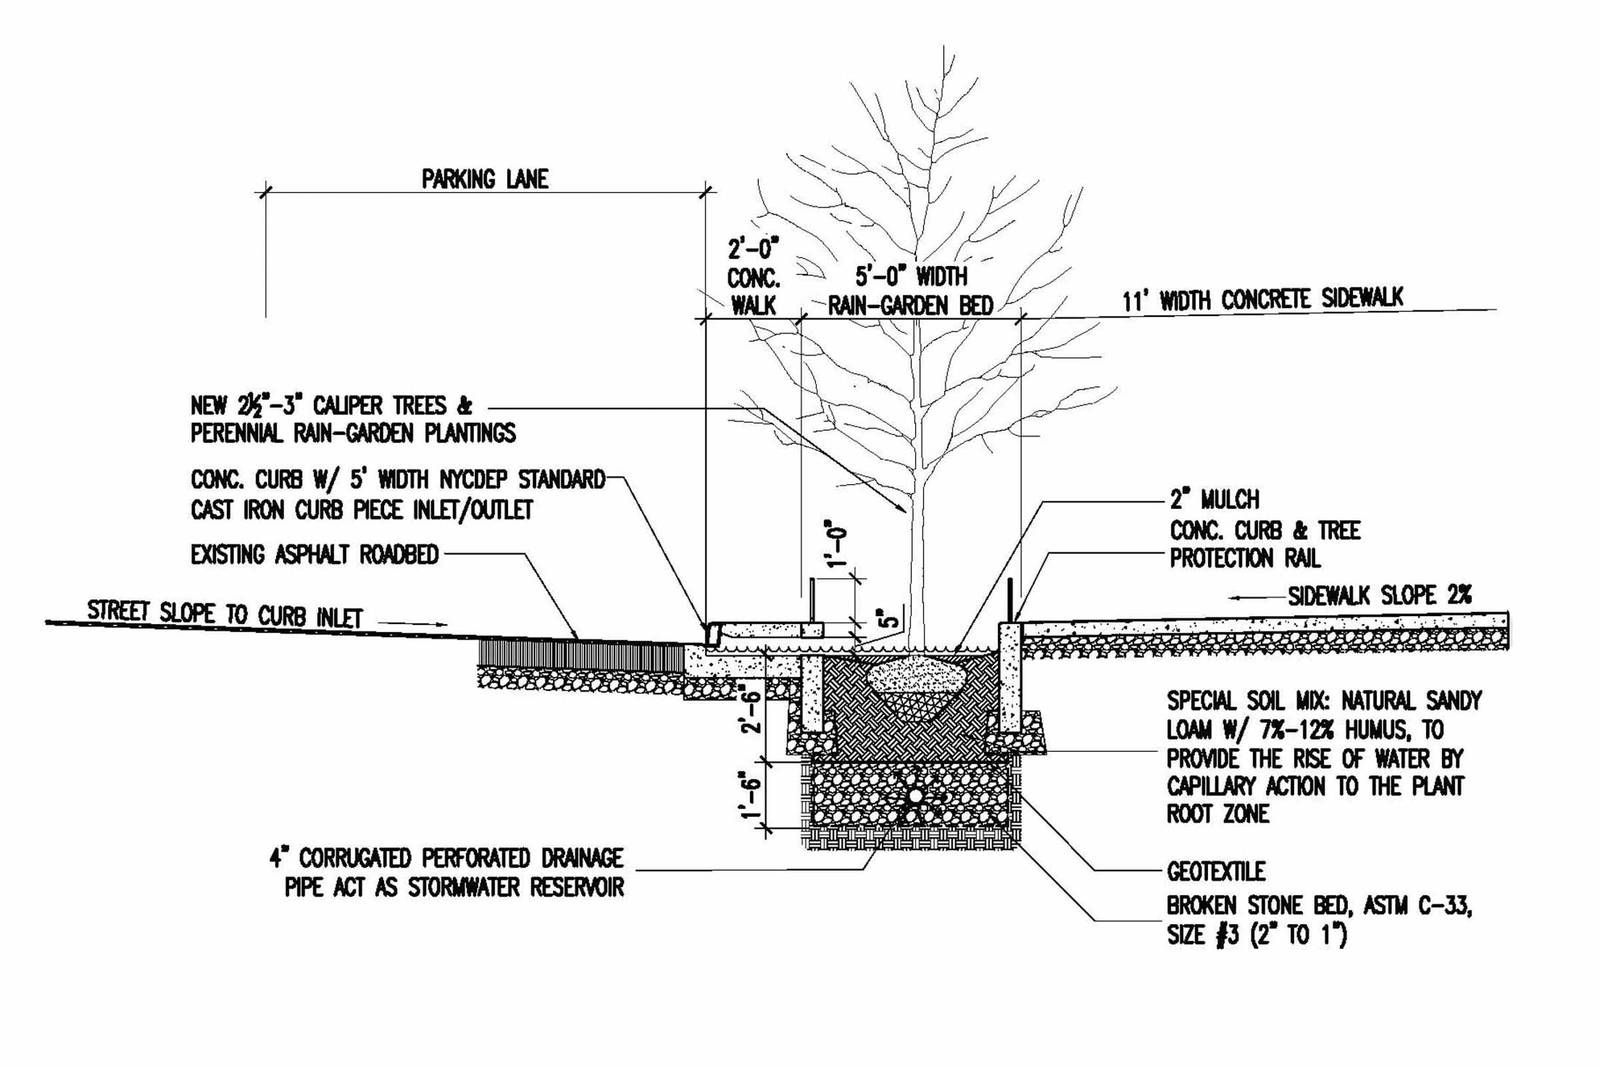 Green Roof Water Runoff Diagram 99 F350 Fuse Future Research Bioswale Rain Garden